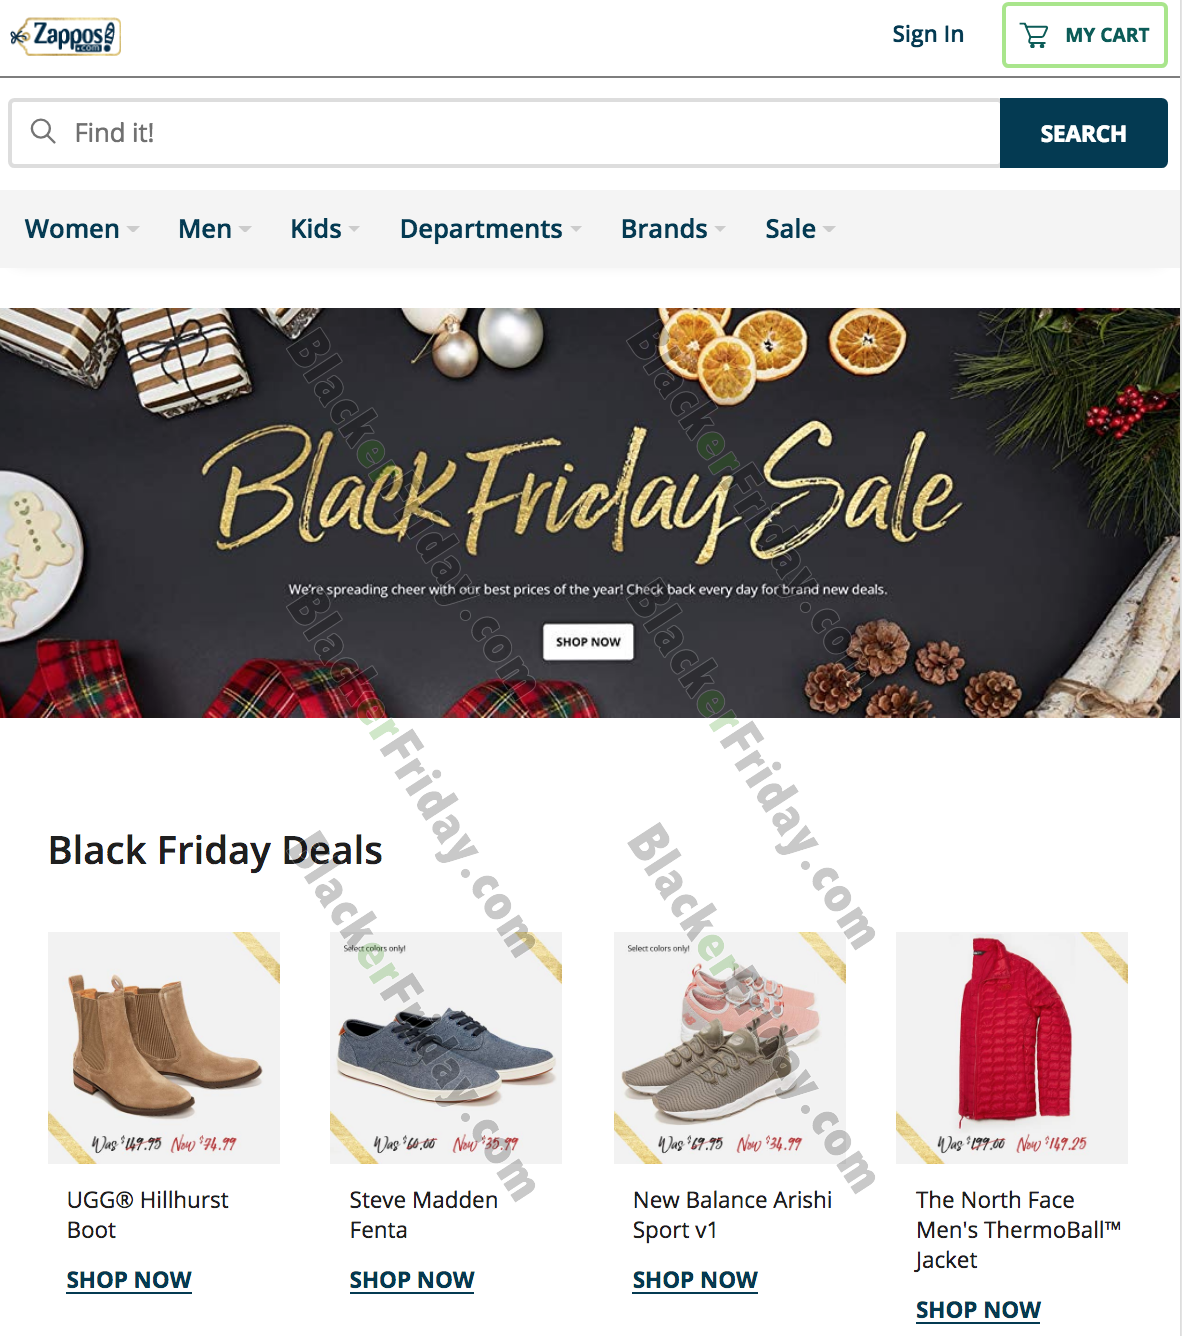 Zappos Black Friday 2020 Sale - What to Expect - Blacker ...